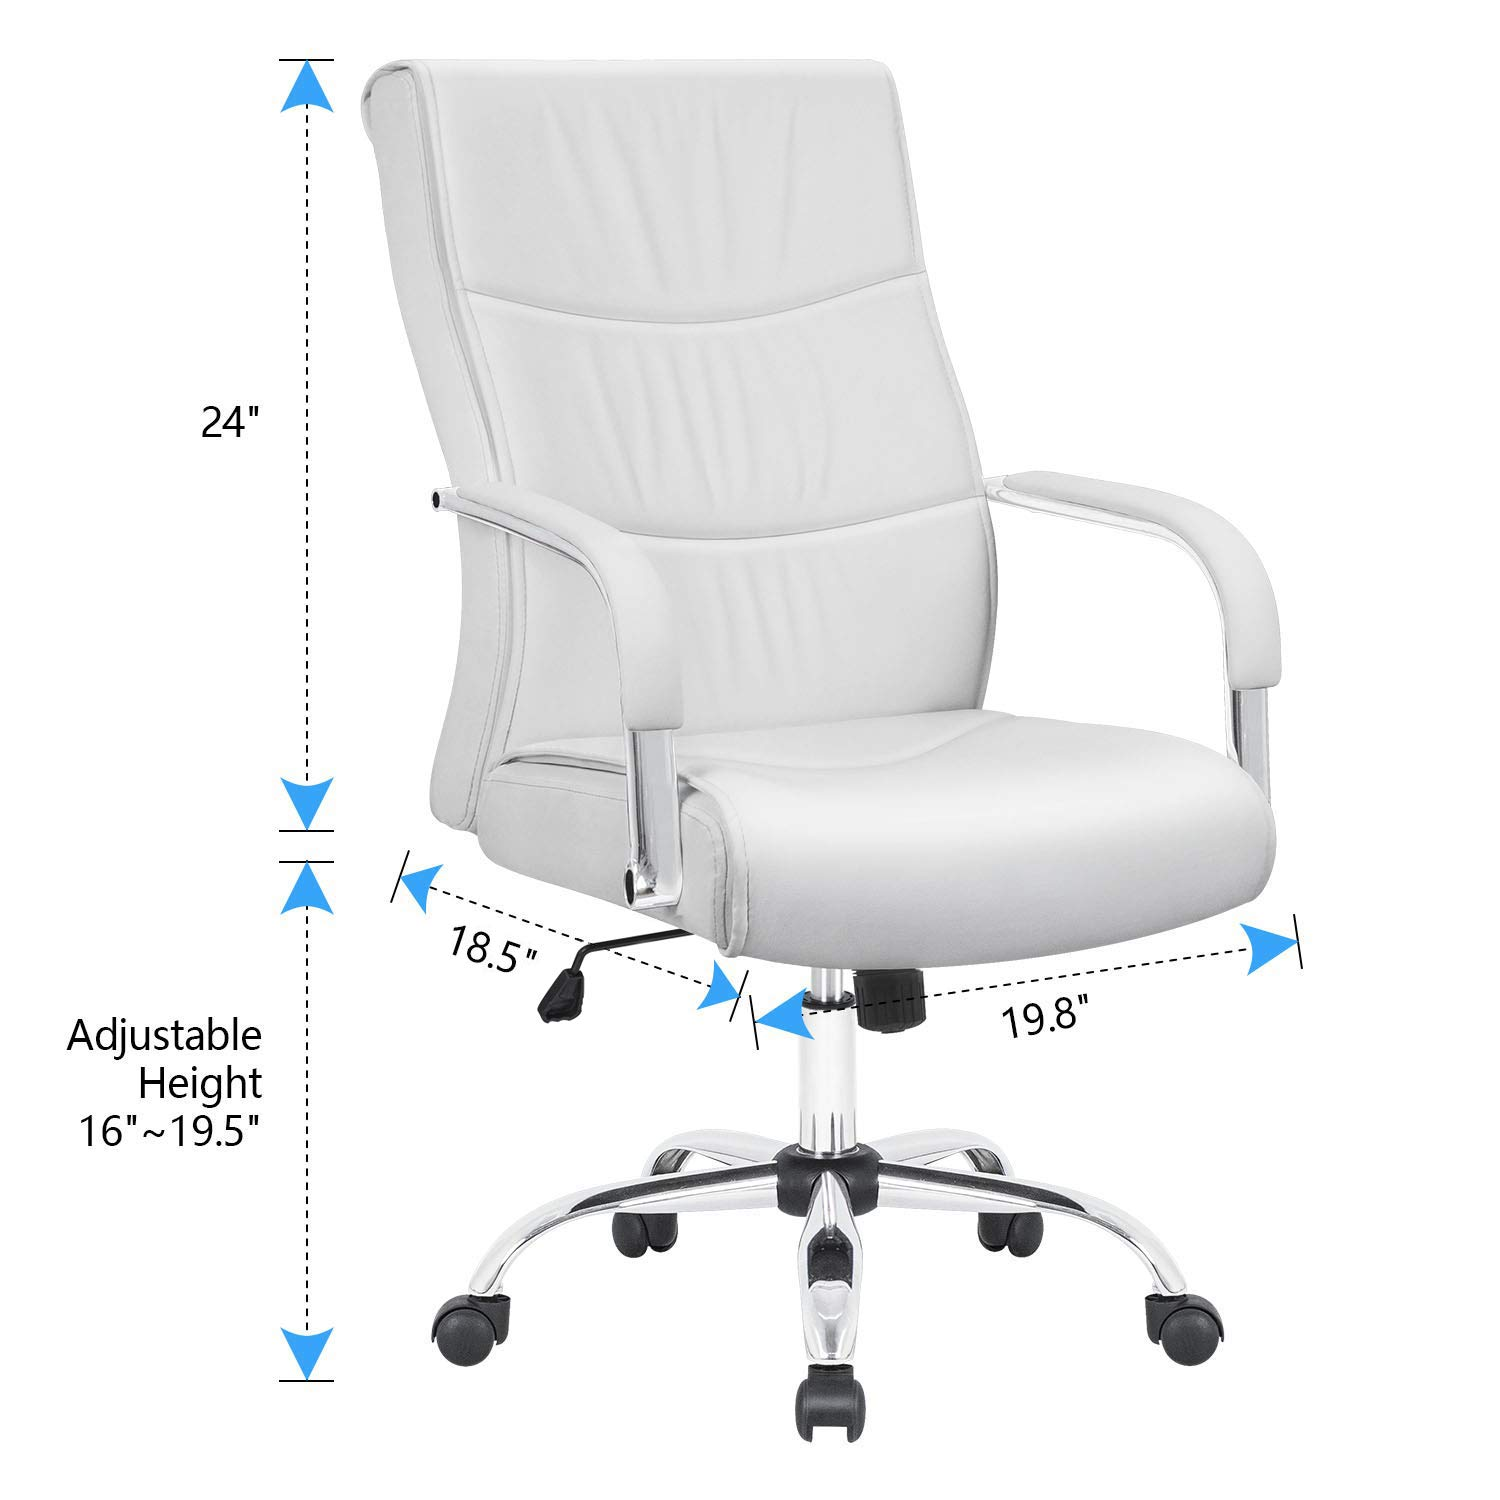 Furmax High Back Office Desk Chair Conference Leather Executive with Padded Armrests,Adjustable Ergonomic Swivel Task Chair with Lumbar Support(White) by Furmax (Image #7)